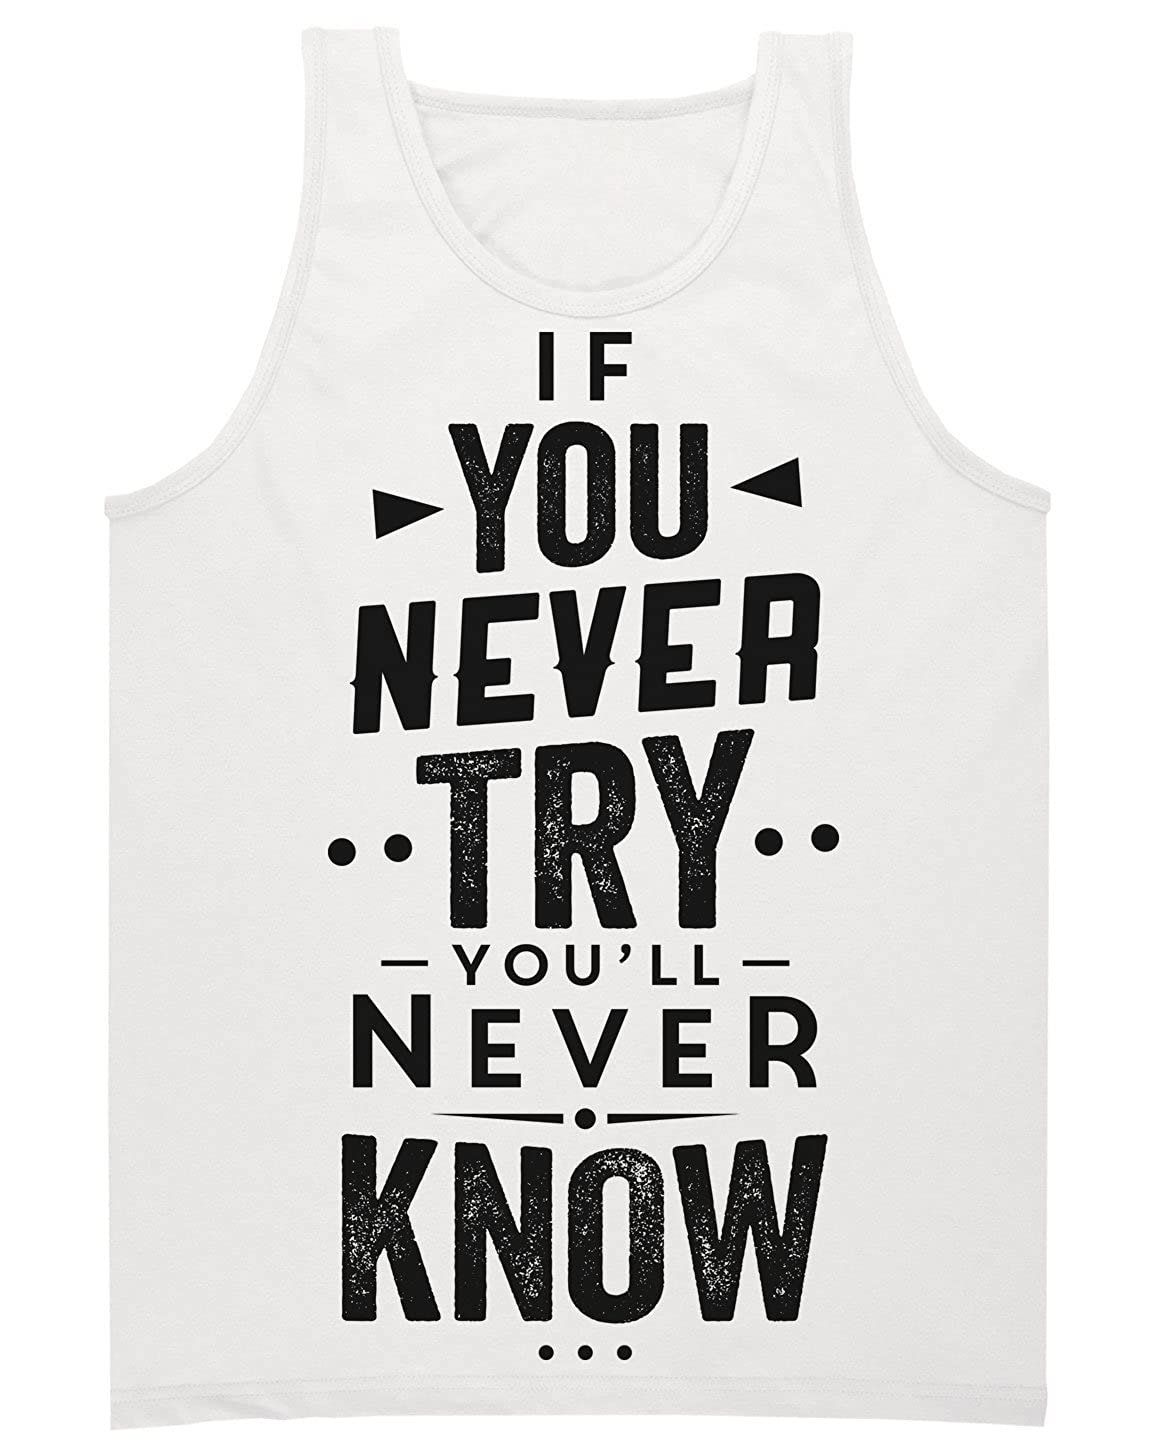 Finest Prints Never Try Youll Never Know Mens Tank Top Shirt